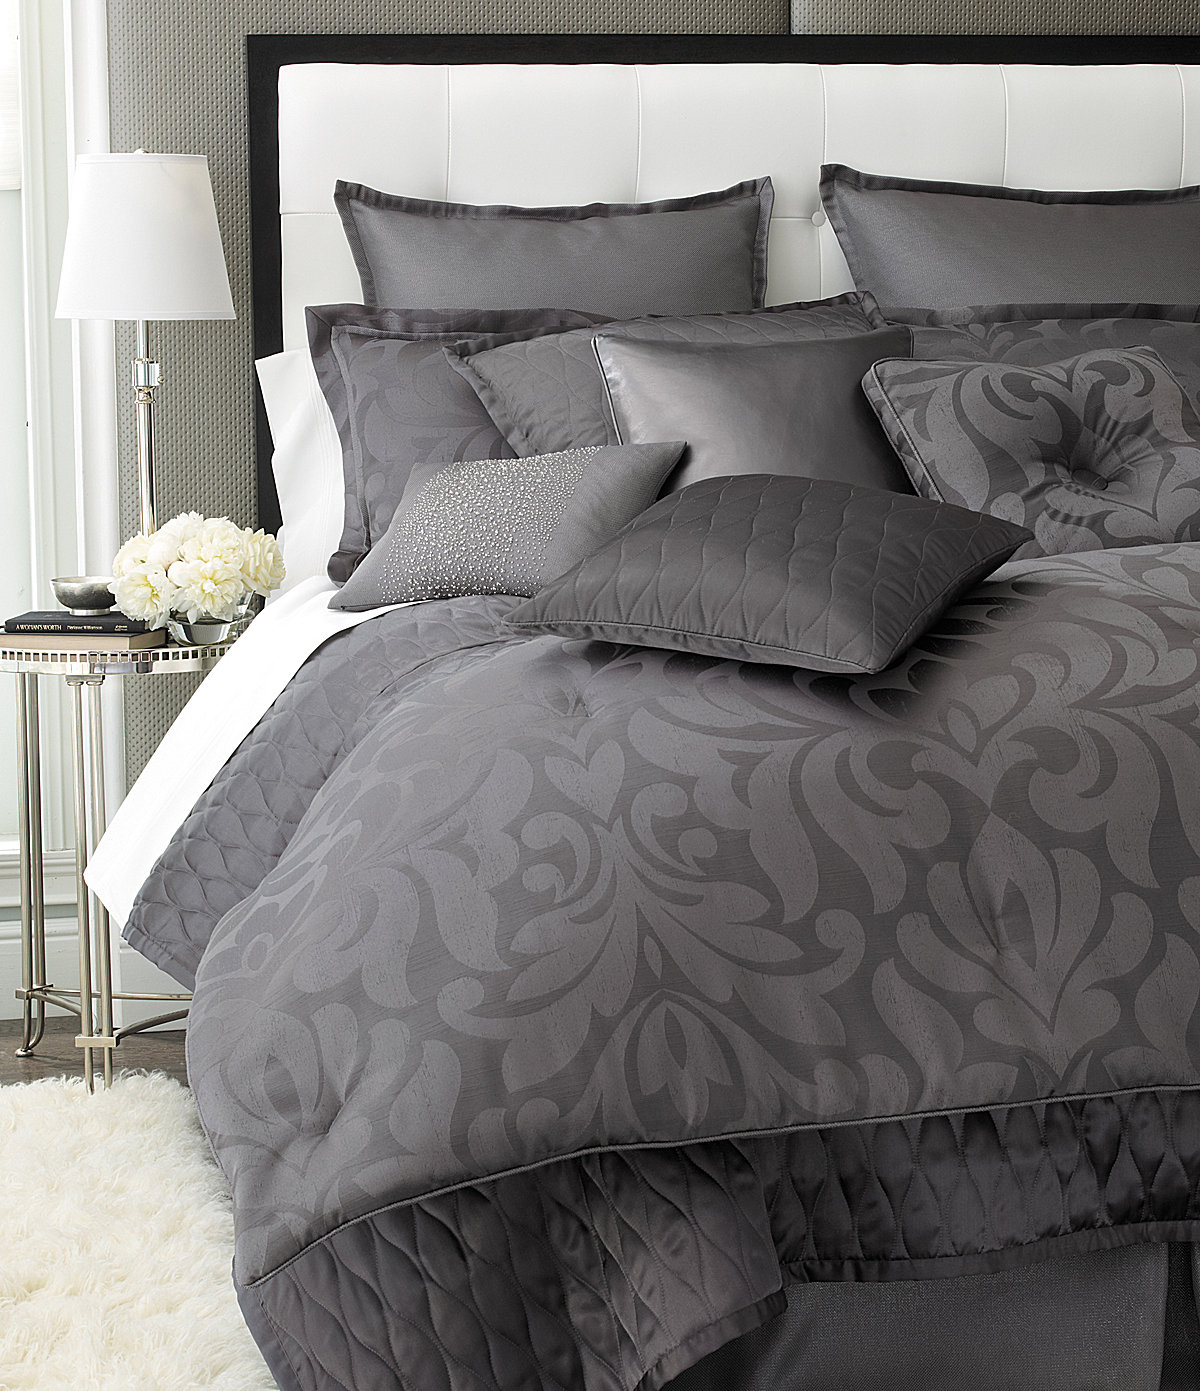 2013 Candice Olson Bedding Collection From Dillard S